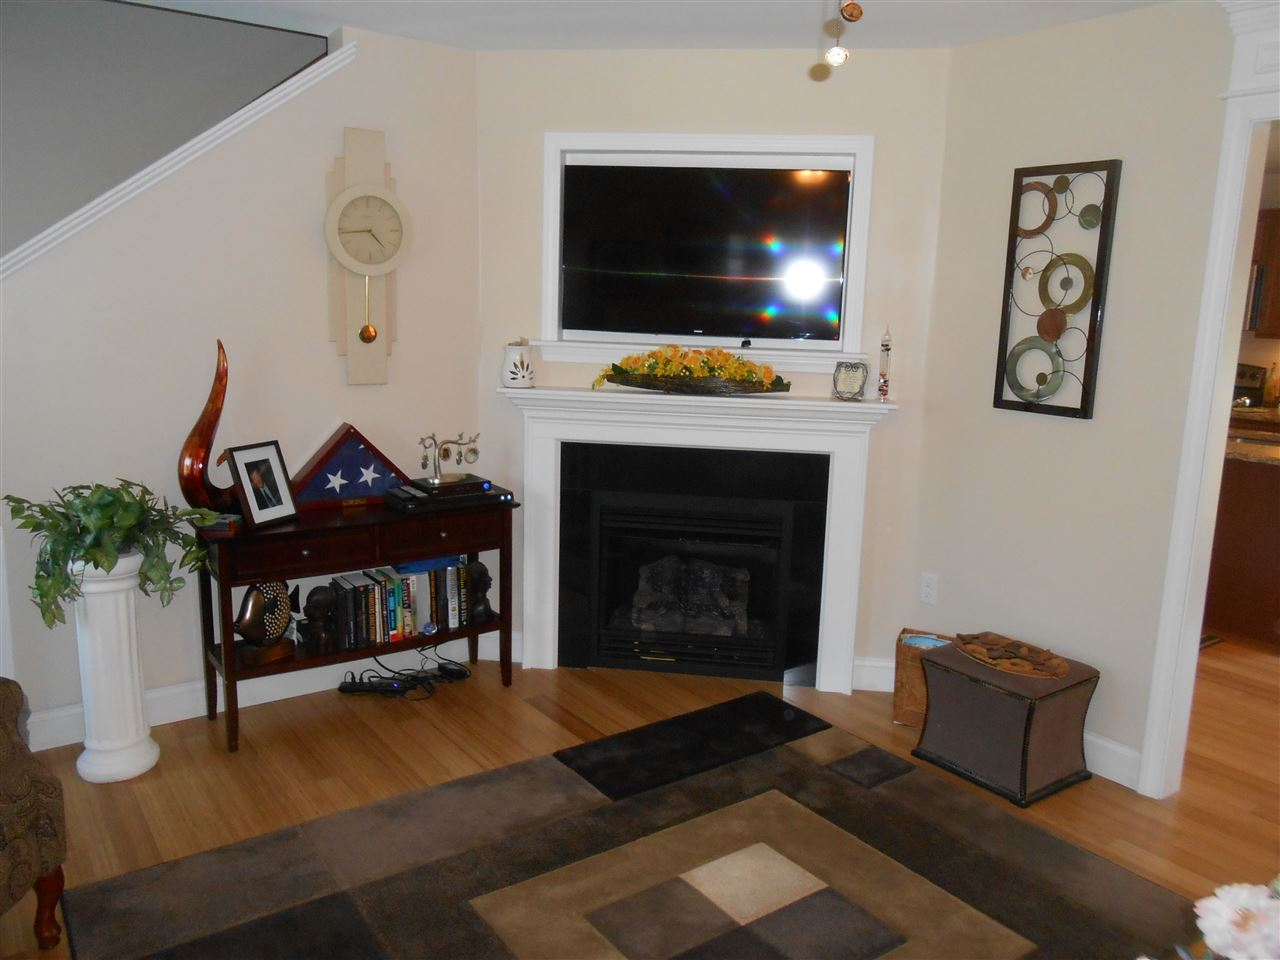 213 Villager Road #47, Chester, NH 03036